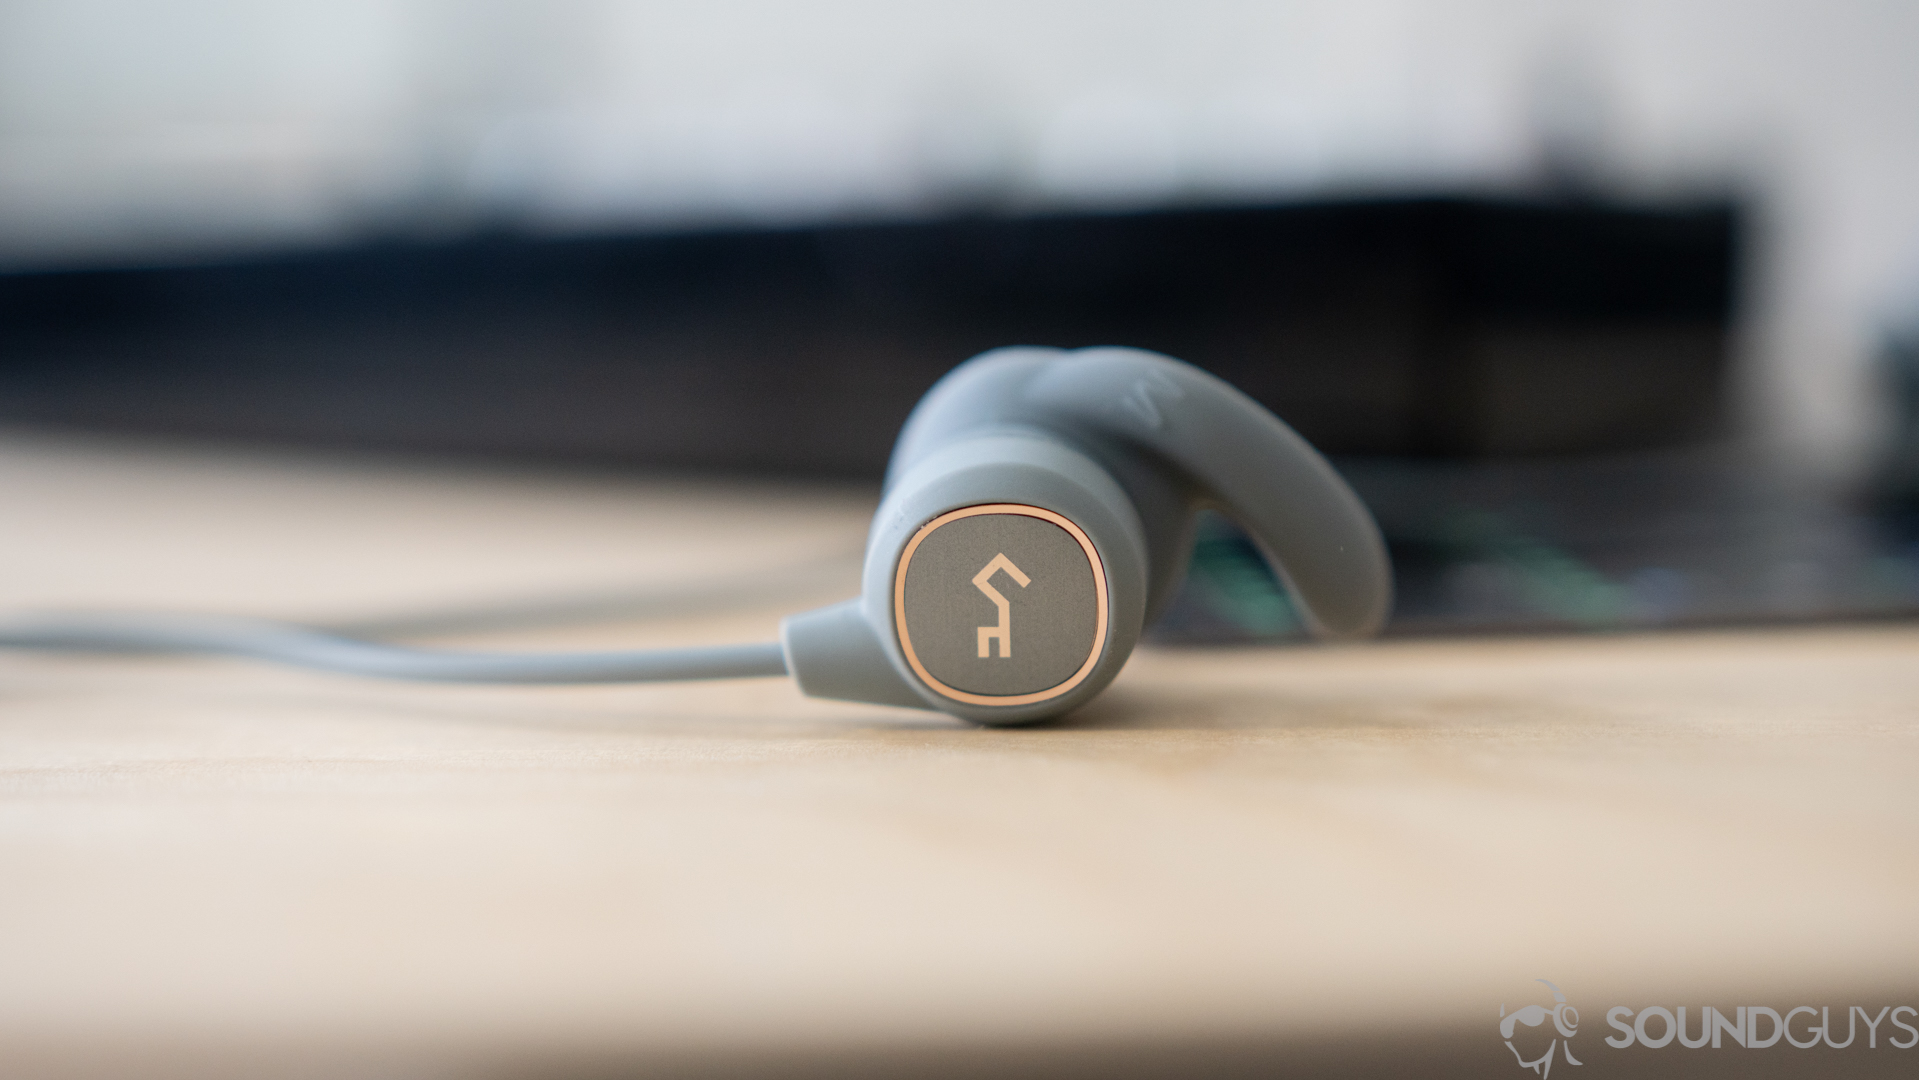 3a00fefb64c Aukey EP-B60 wireless earbuds review - SoundGuys